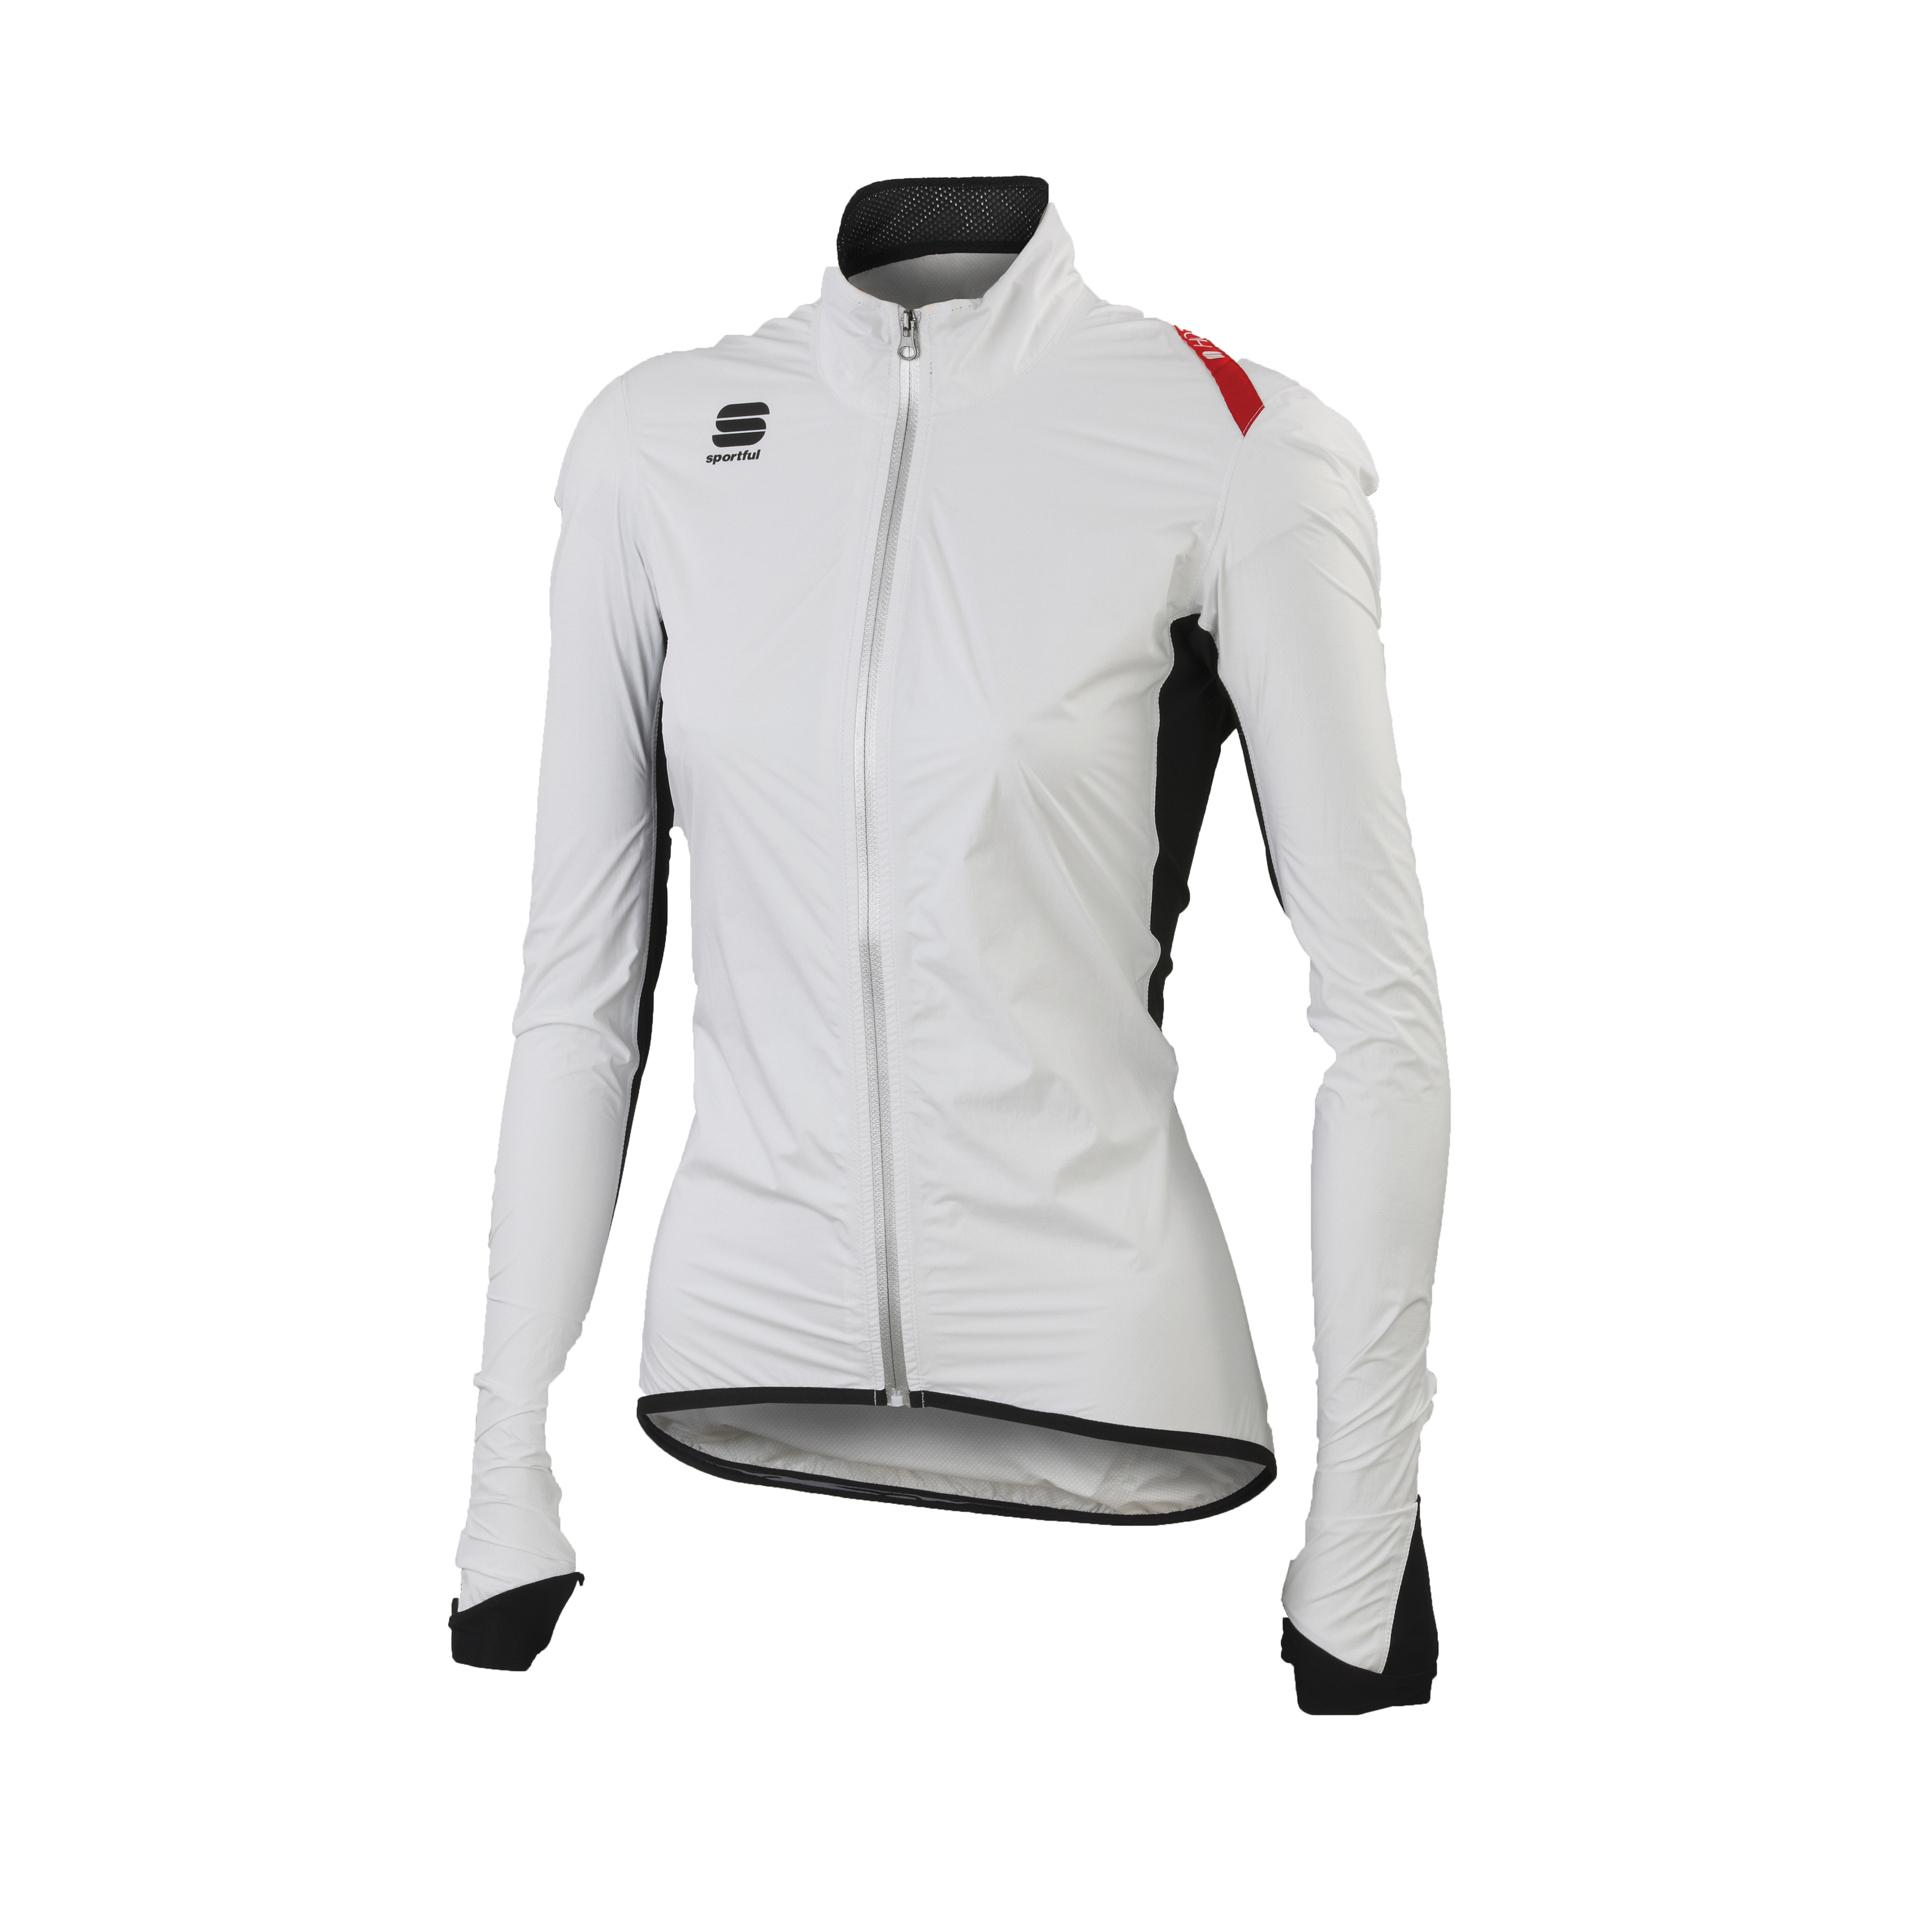 Sportful Fietsjack Dames Wit Zwart / SF Hot Pack No-Rain W Jacket-White/Black